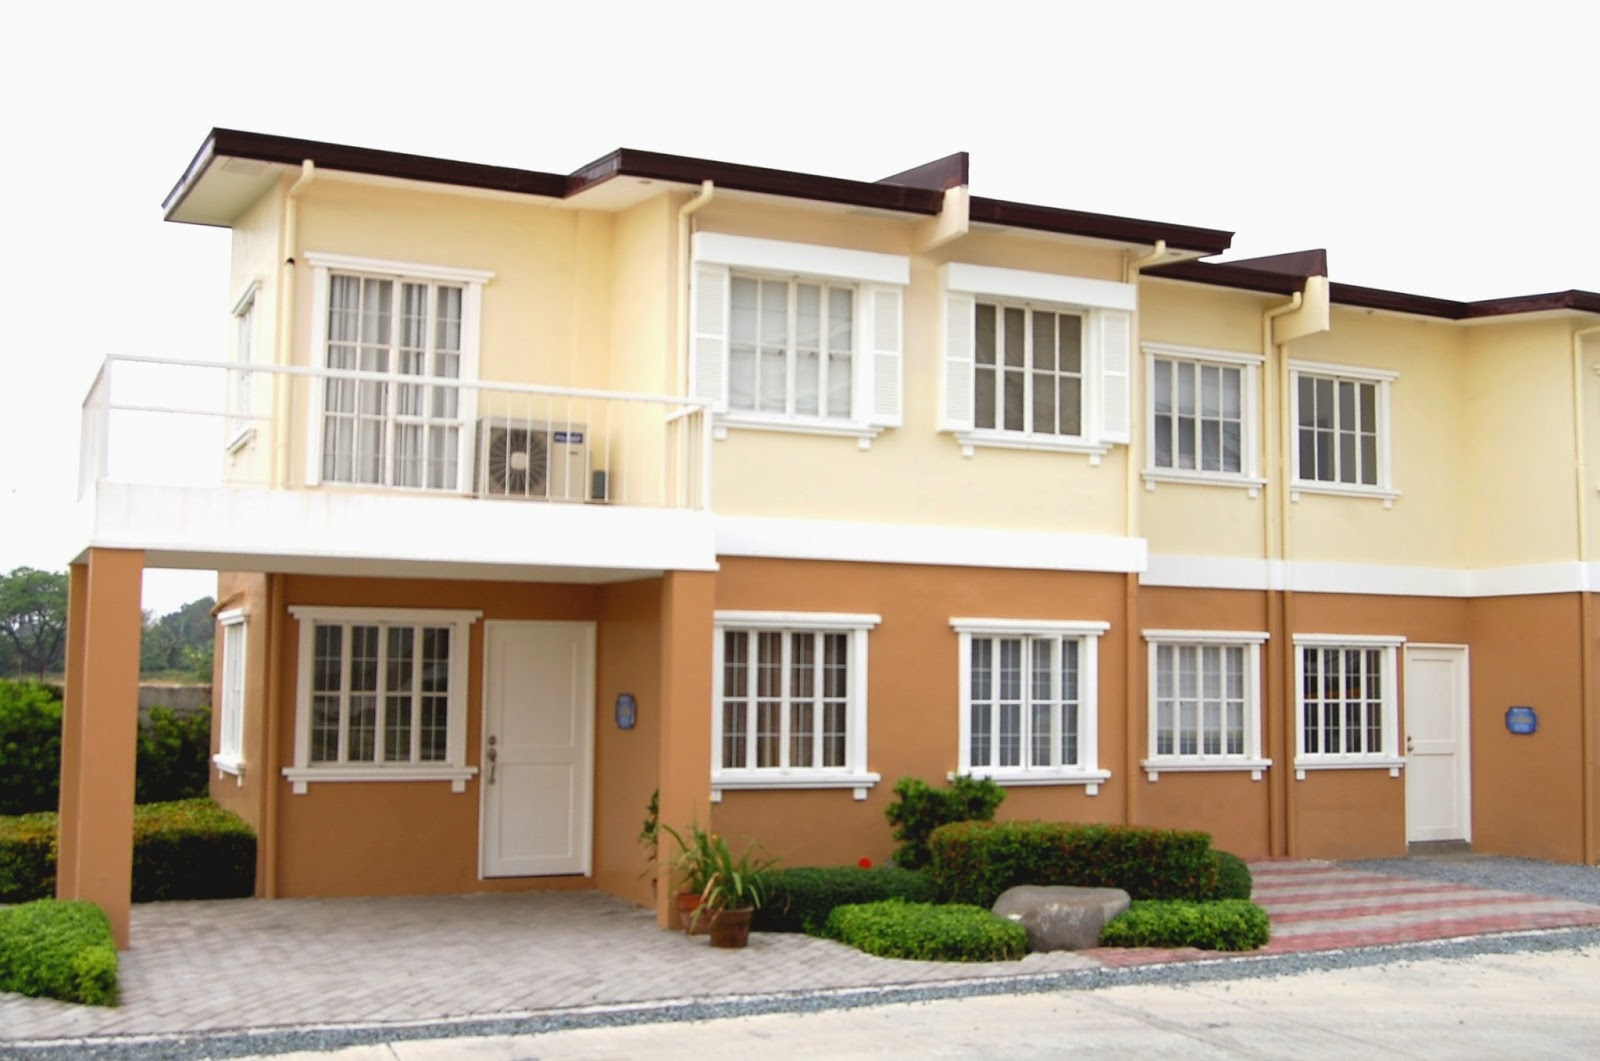 lancaster new city formerly lancaster estates cavite providing affordable house and lot for sale rent